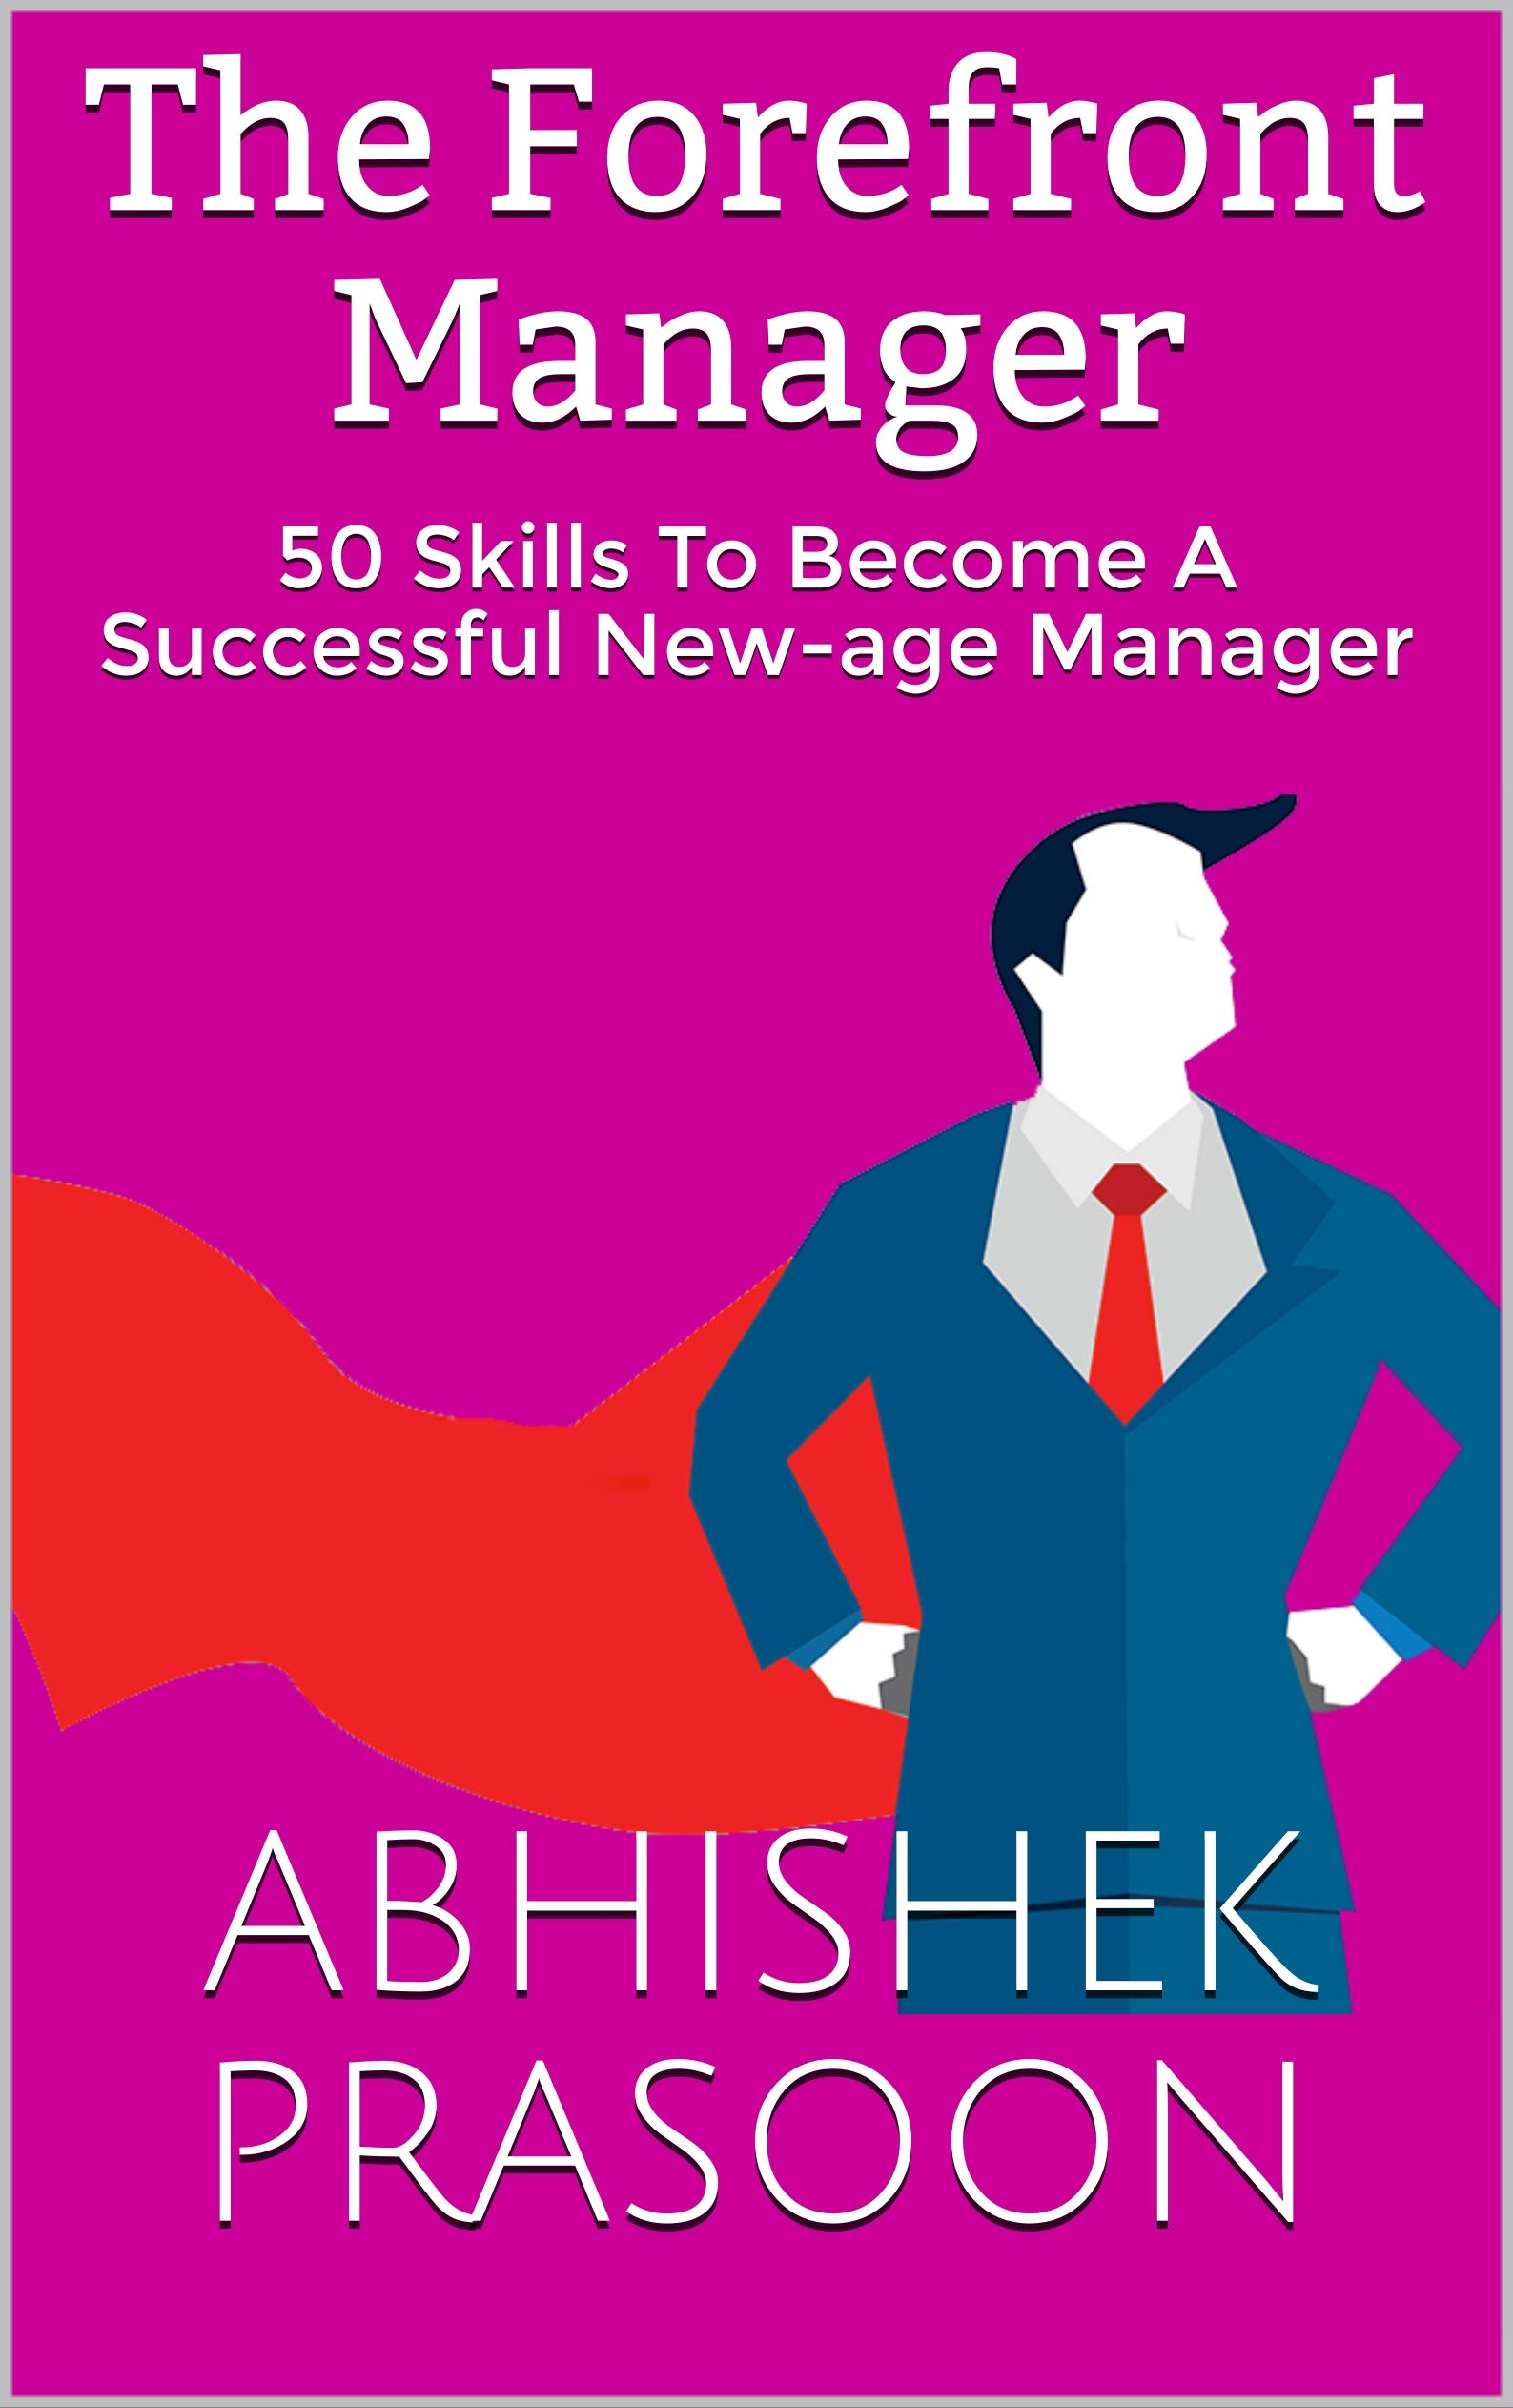 The Forefront Manager: 50 Skills To Become A Successful New-age Manager